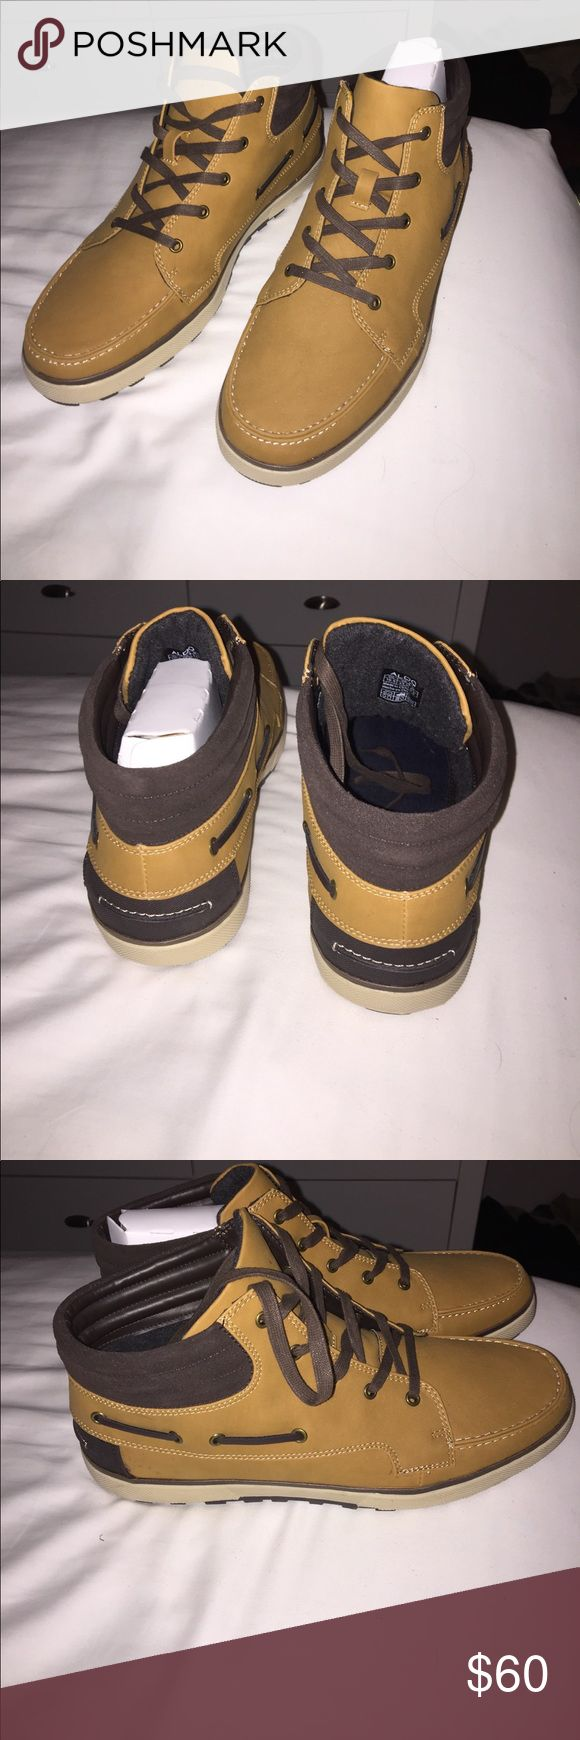 Aldo sneakers Aldo sneakers brand new never been worn at all . Great for dressing up . These are a size 10.5 . Great sneaker ! Great price ! Aldo Shoes Sneakers